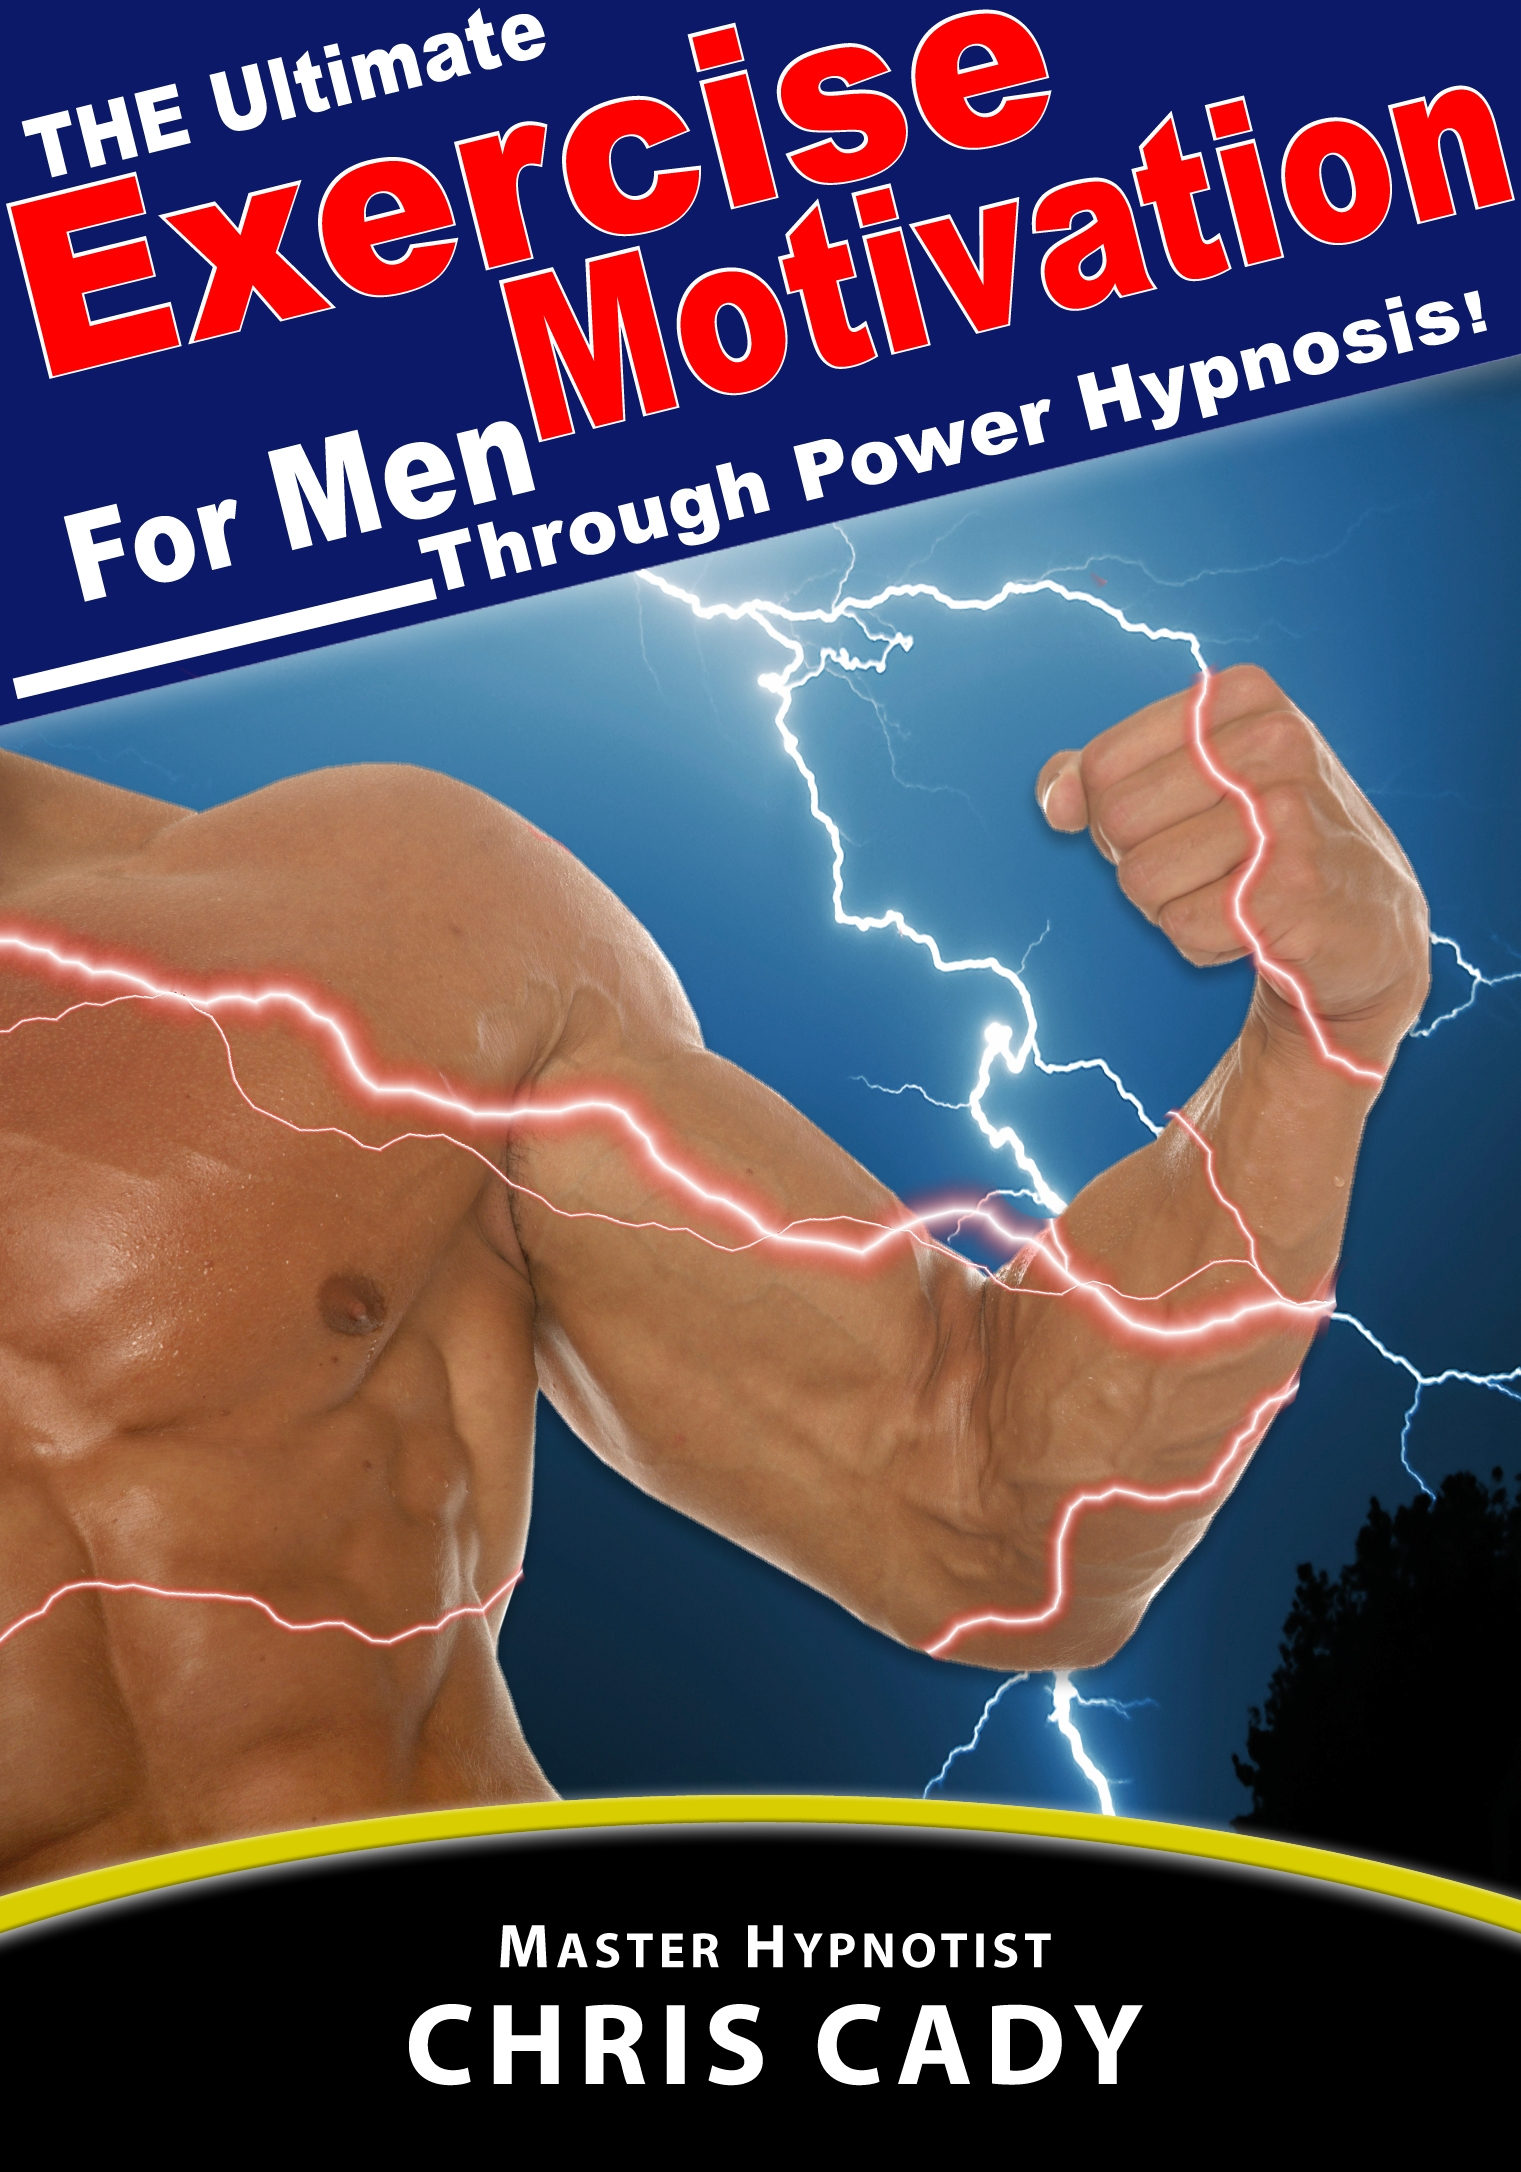 hypnosis exercise motivation cd for men and mp3 download